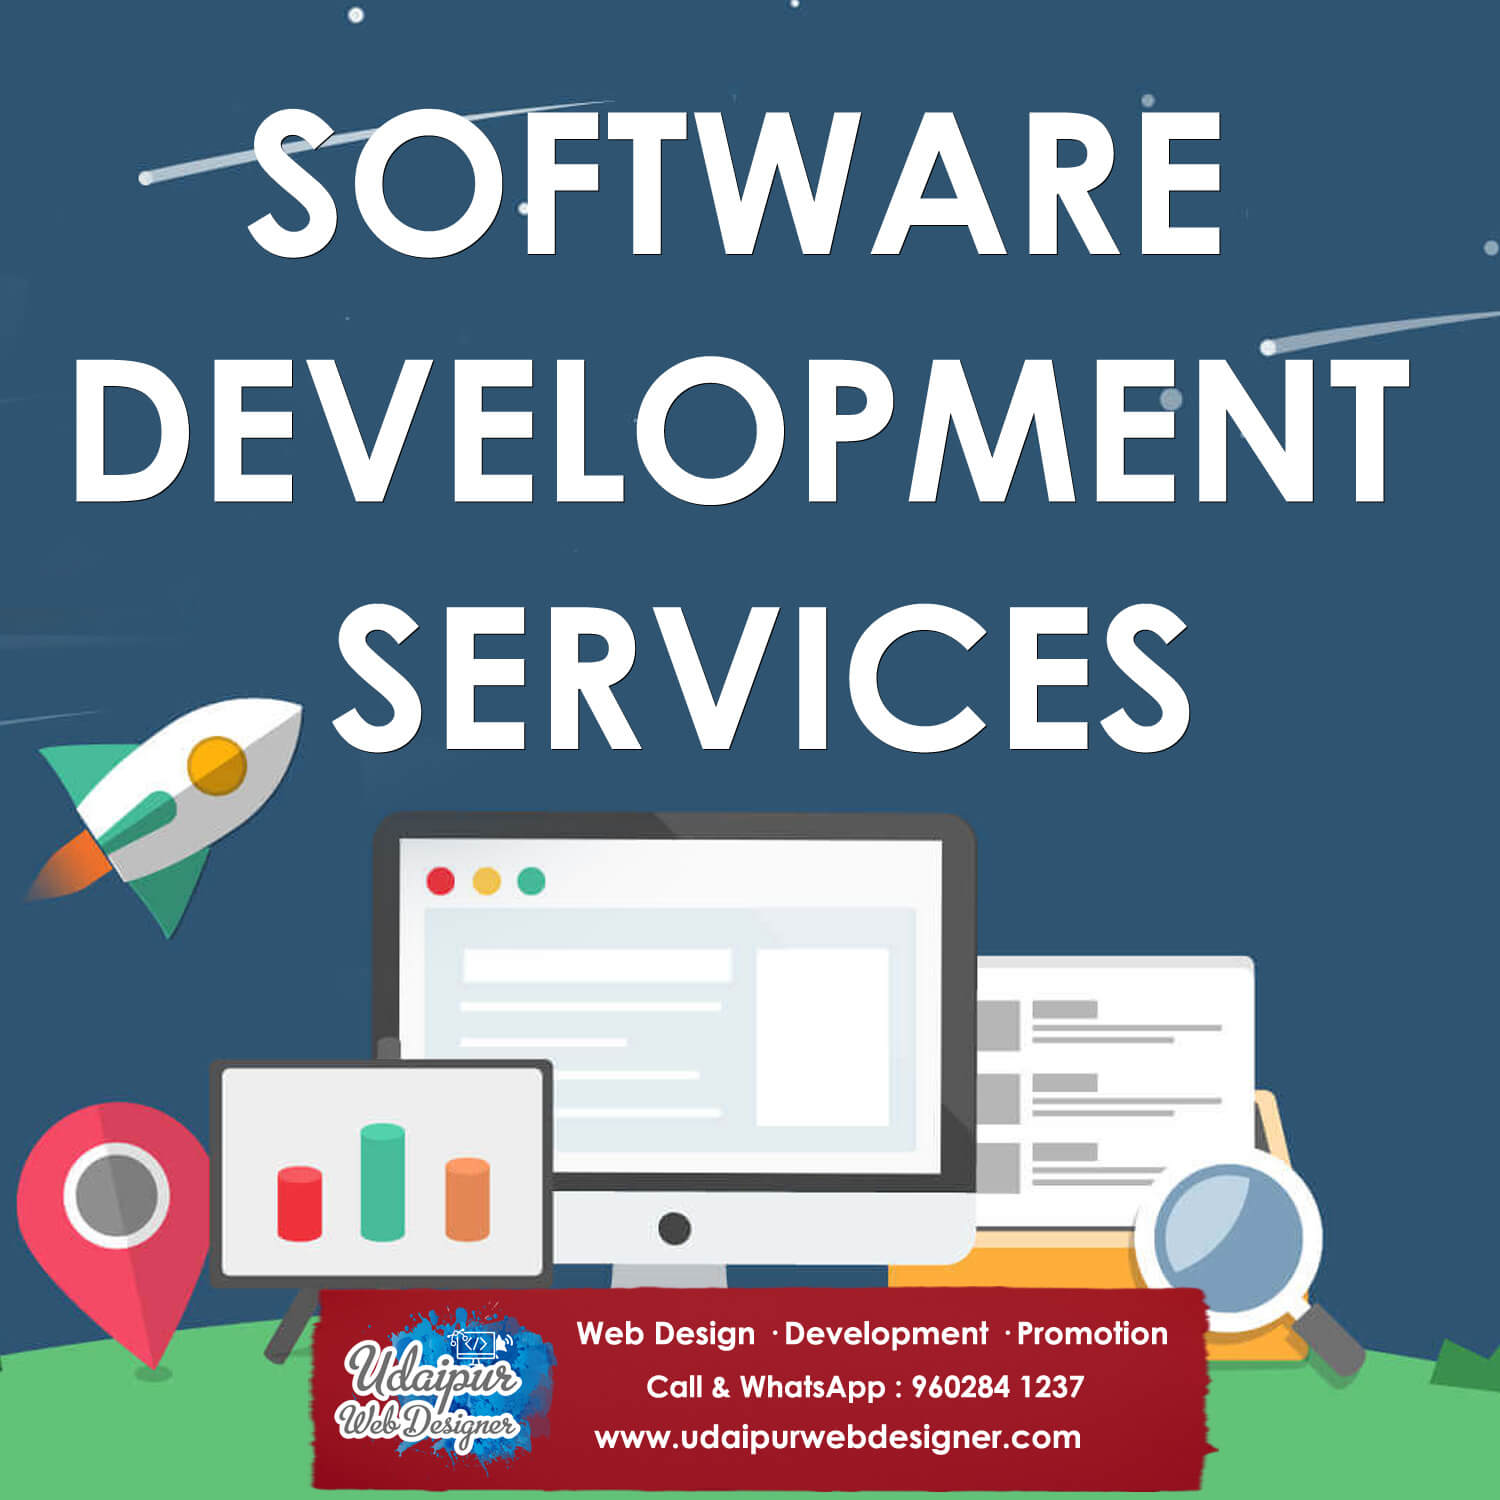 Software development in Udaipur